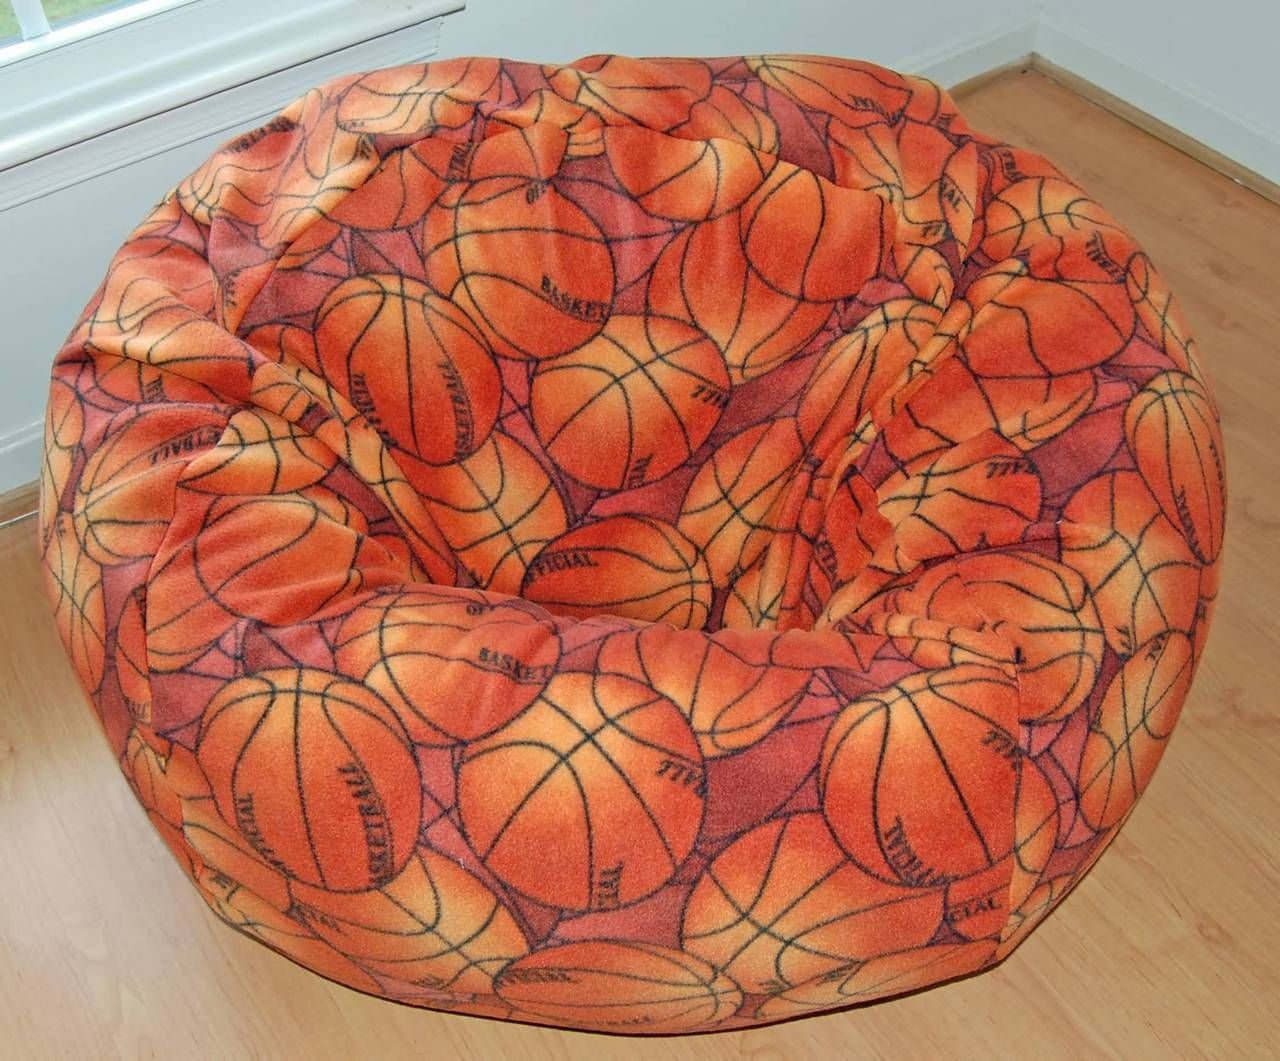 Basketball Bean Bag Chair Pin By Ahh Bean Bags Ahhprods On Ahhprods Bean Bag Chair